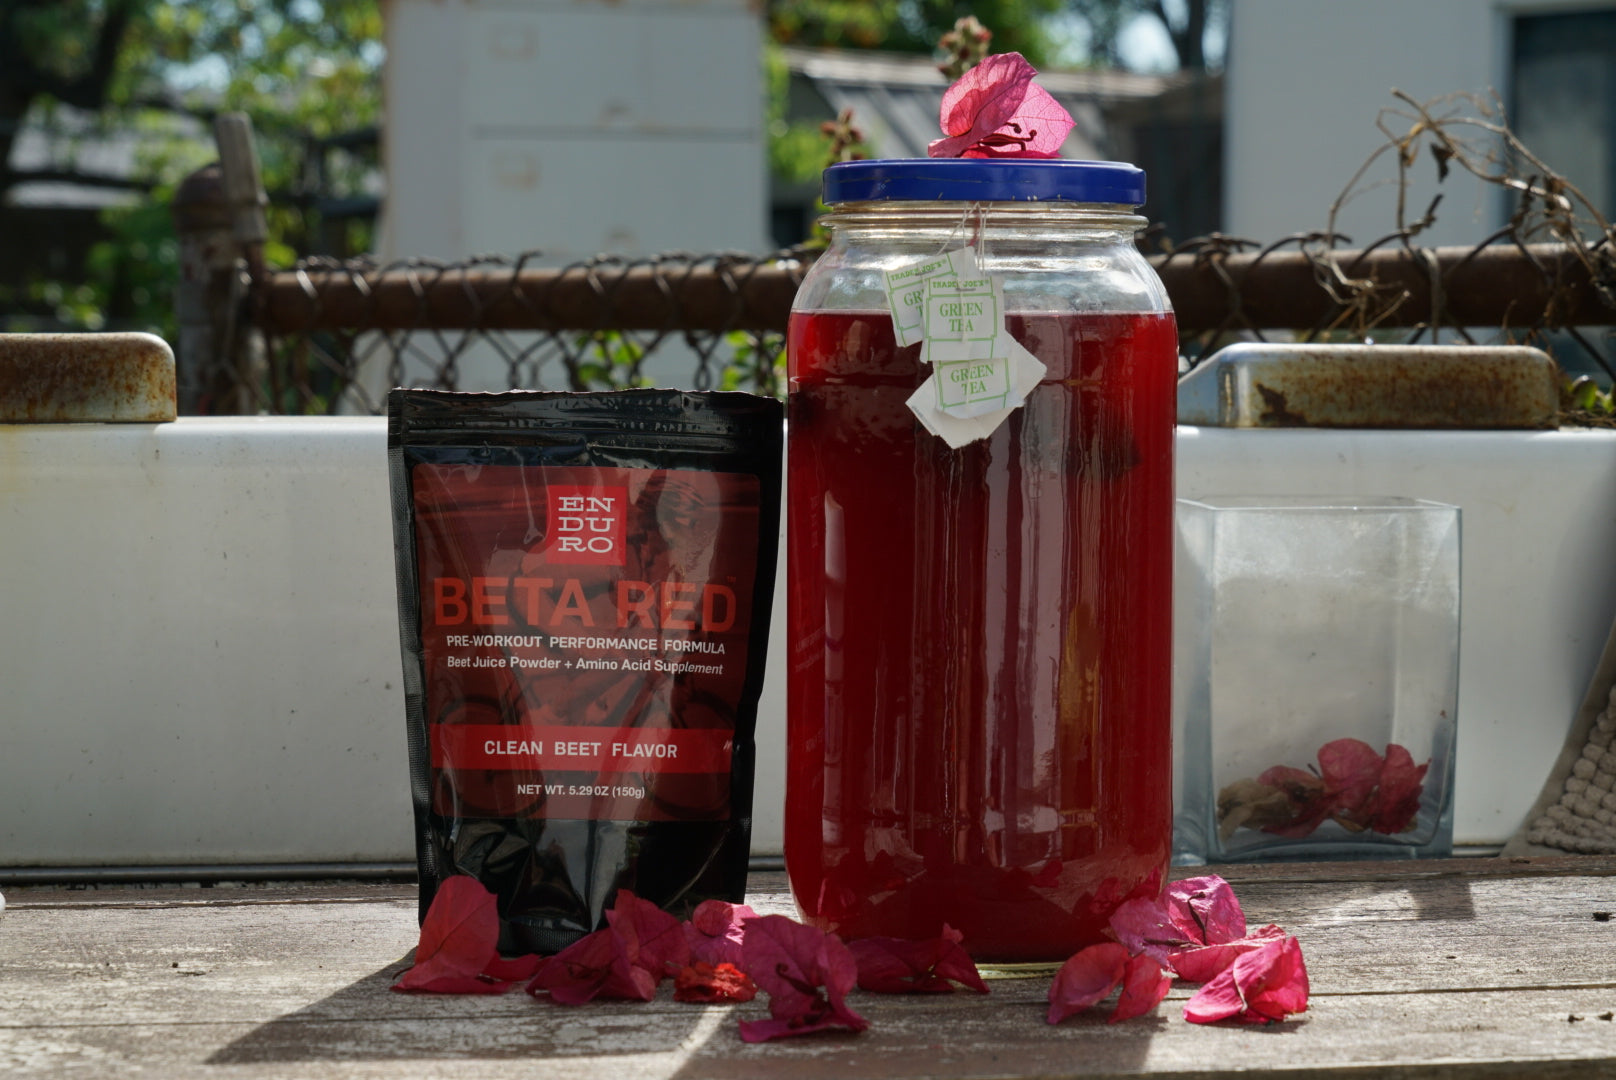 Peter Maksimow's Beta Red Green Sun Tea